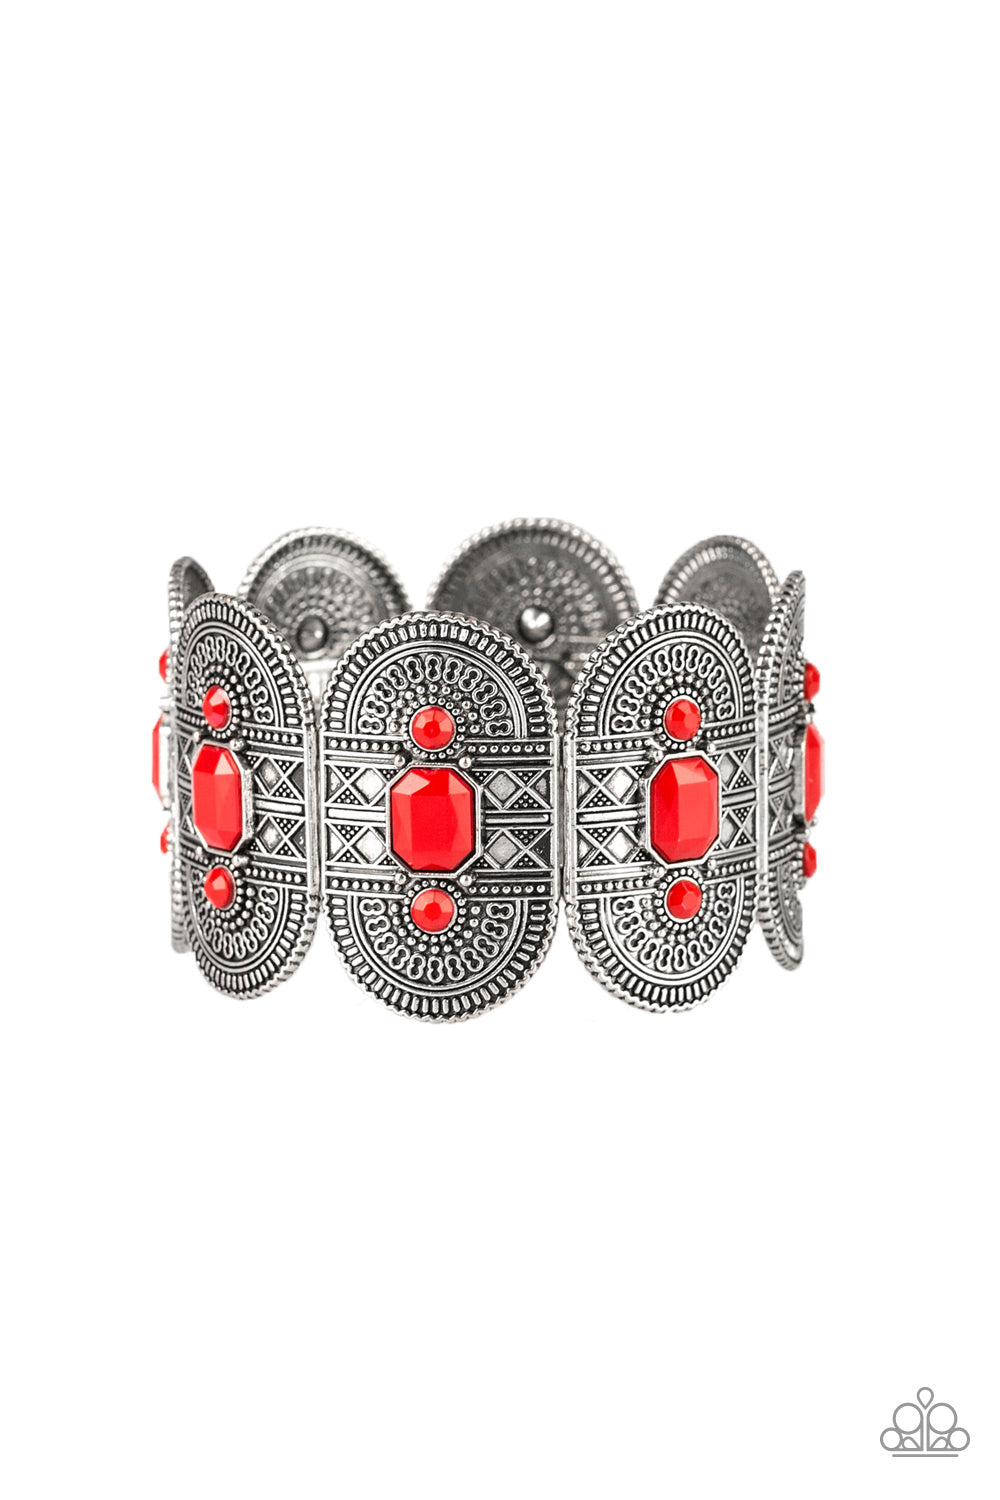 Paparazzi Accessories - Turn Up The TROPICAL Heat - Red Bracelet - JMJ Jewelry Collection